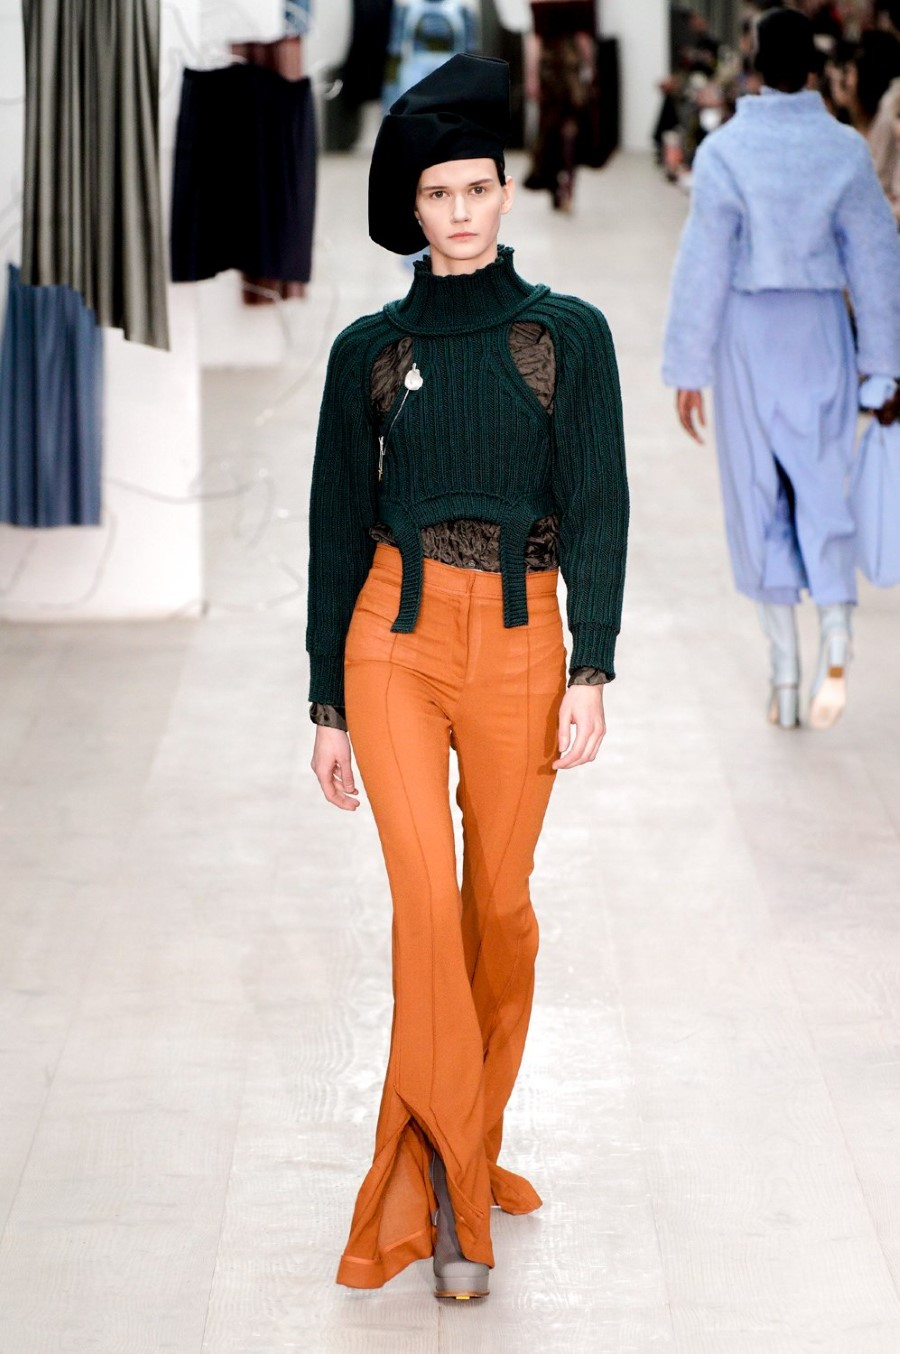 Richard Malone - Fall Winter 2020 - London Fashion Week